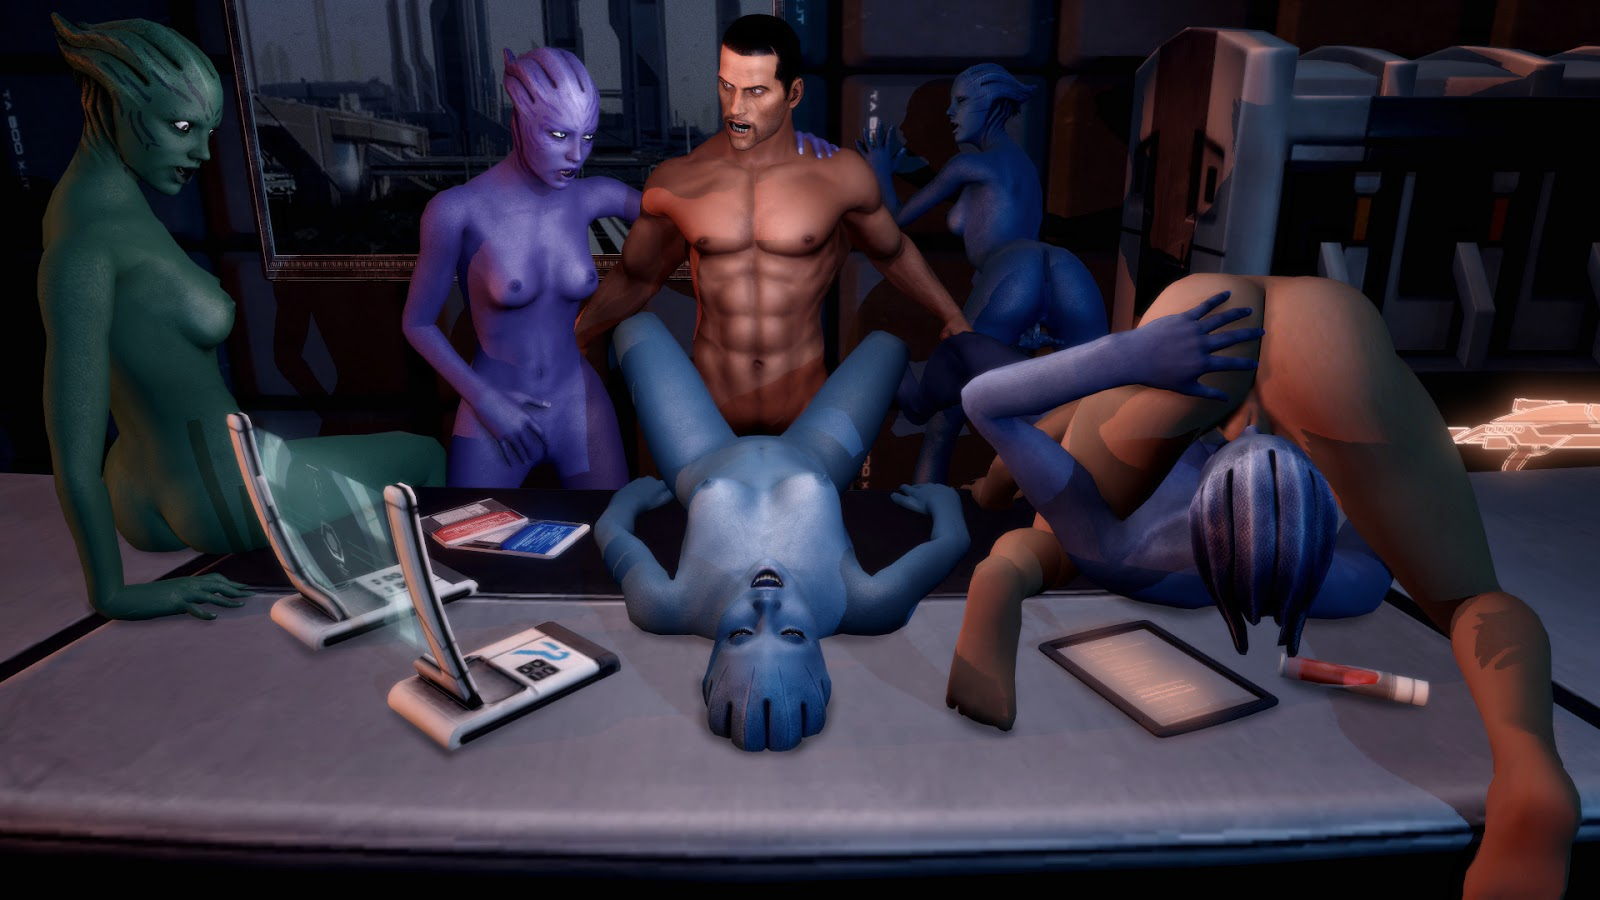 Mass effect sex game nude tube